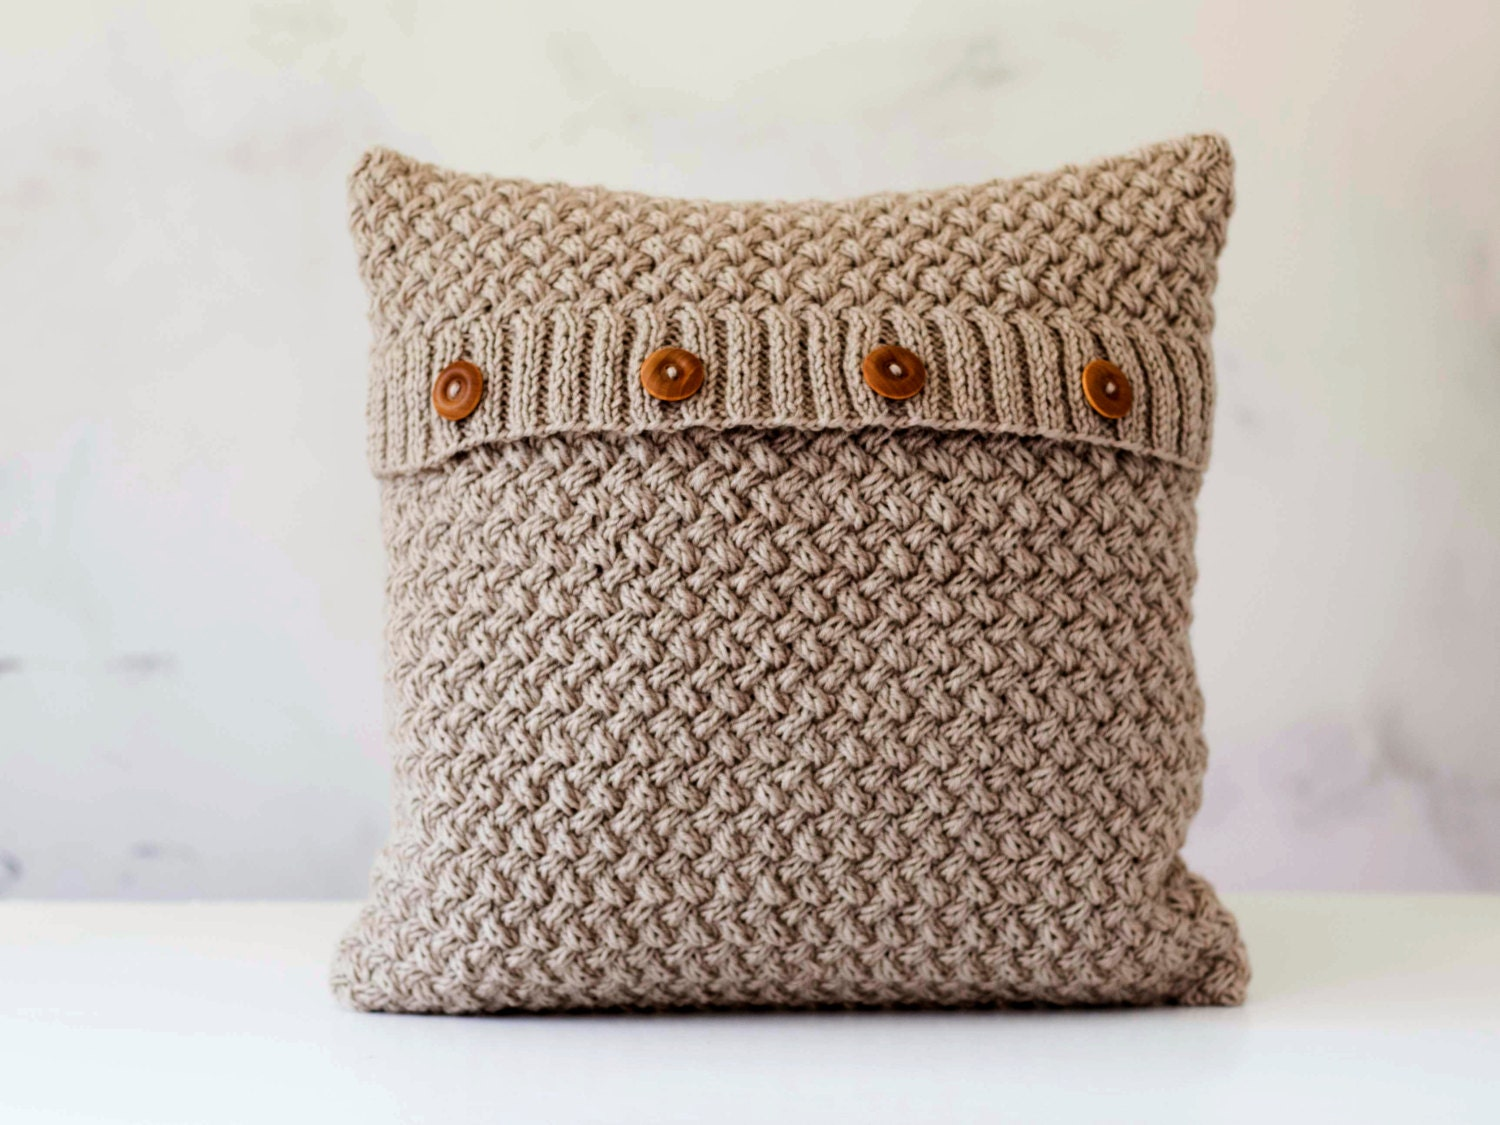 Chunky Knit Pillow Pattern : Knit pillow cover beige knitted chunky pillow minimalistic